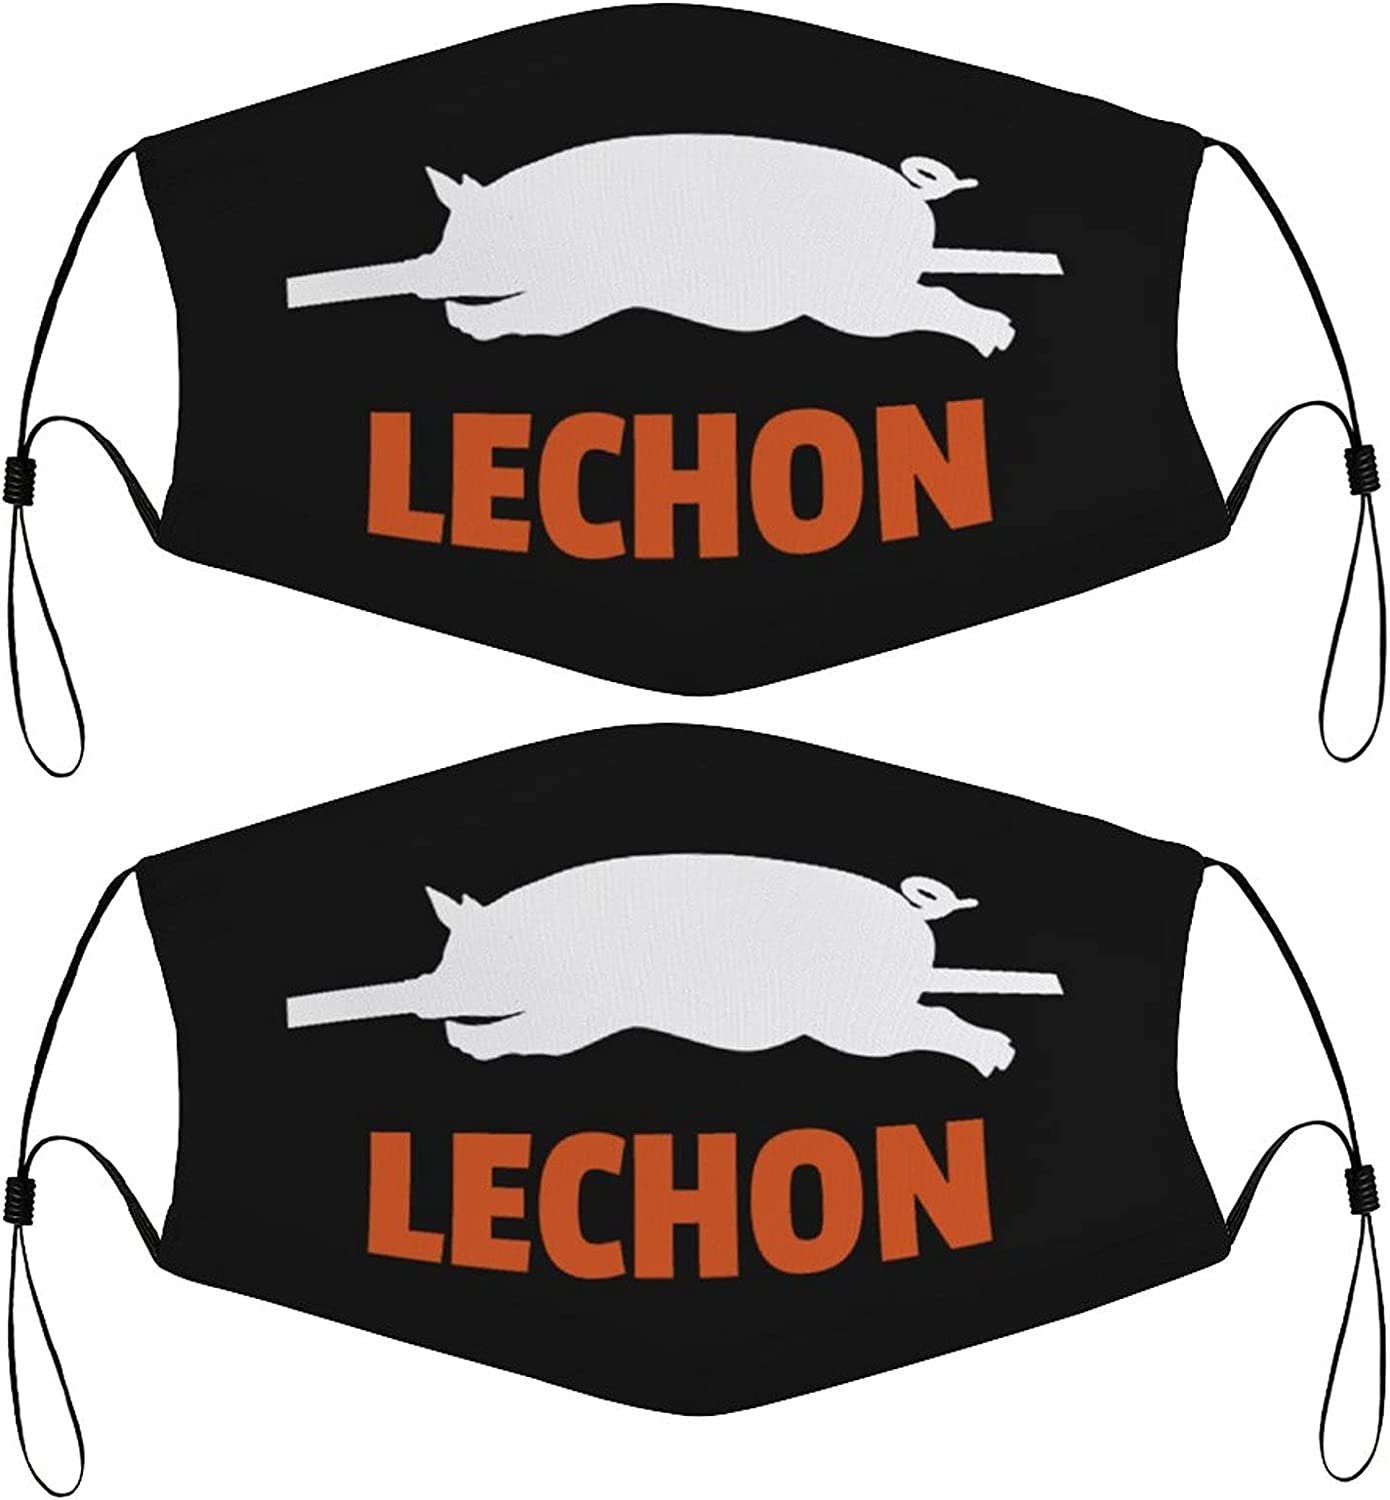 Lechon Filipino Kids Face Masks Set of 2 with 4 Filters Washable Reusable Breathable Black Cloth Bandanas Scarf for Unisex Boys Girls